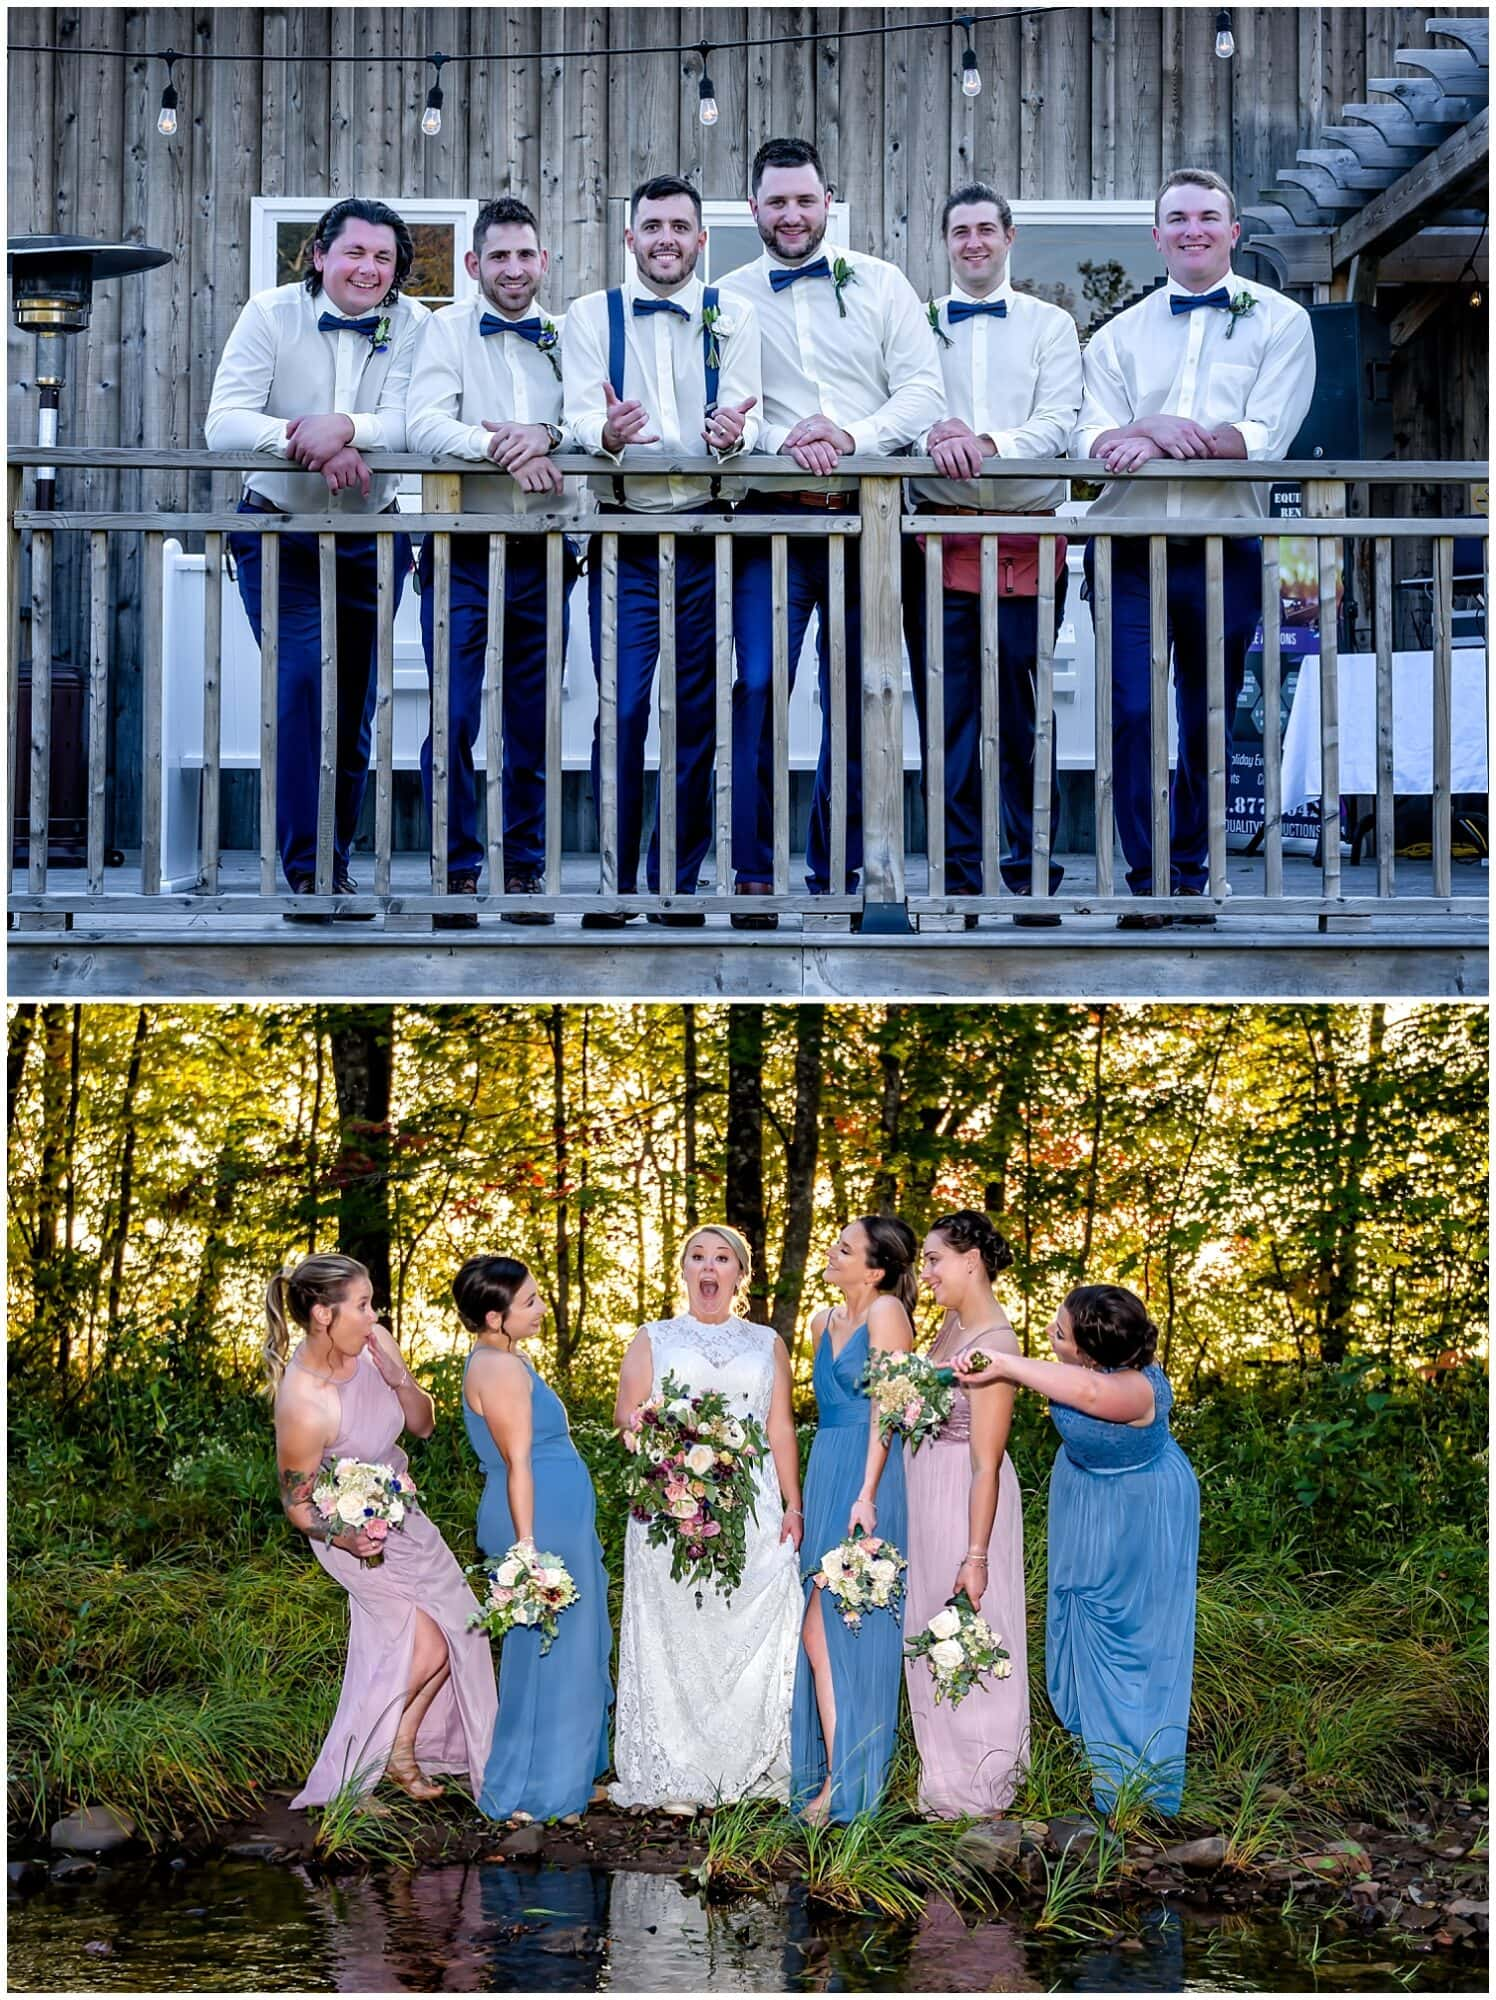 The bride poses with bridesmaids while the groom poses with his groomsmen at the Barn at Sadie Belle Farm in NS.